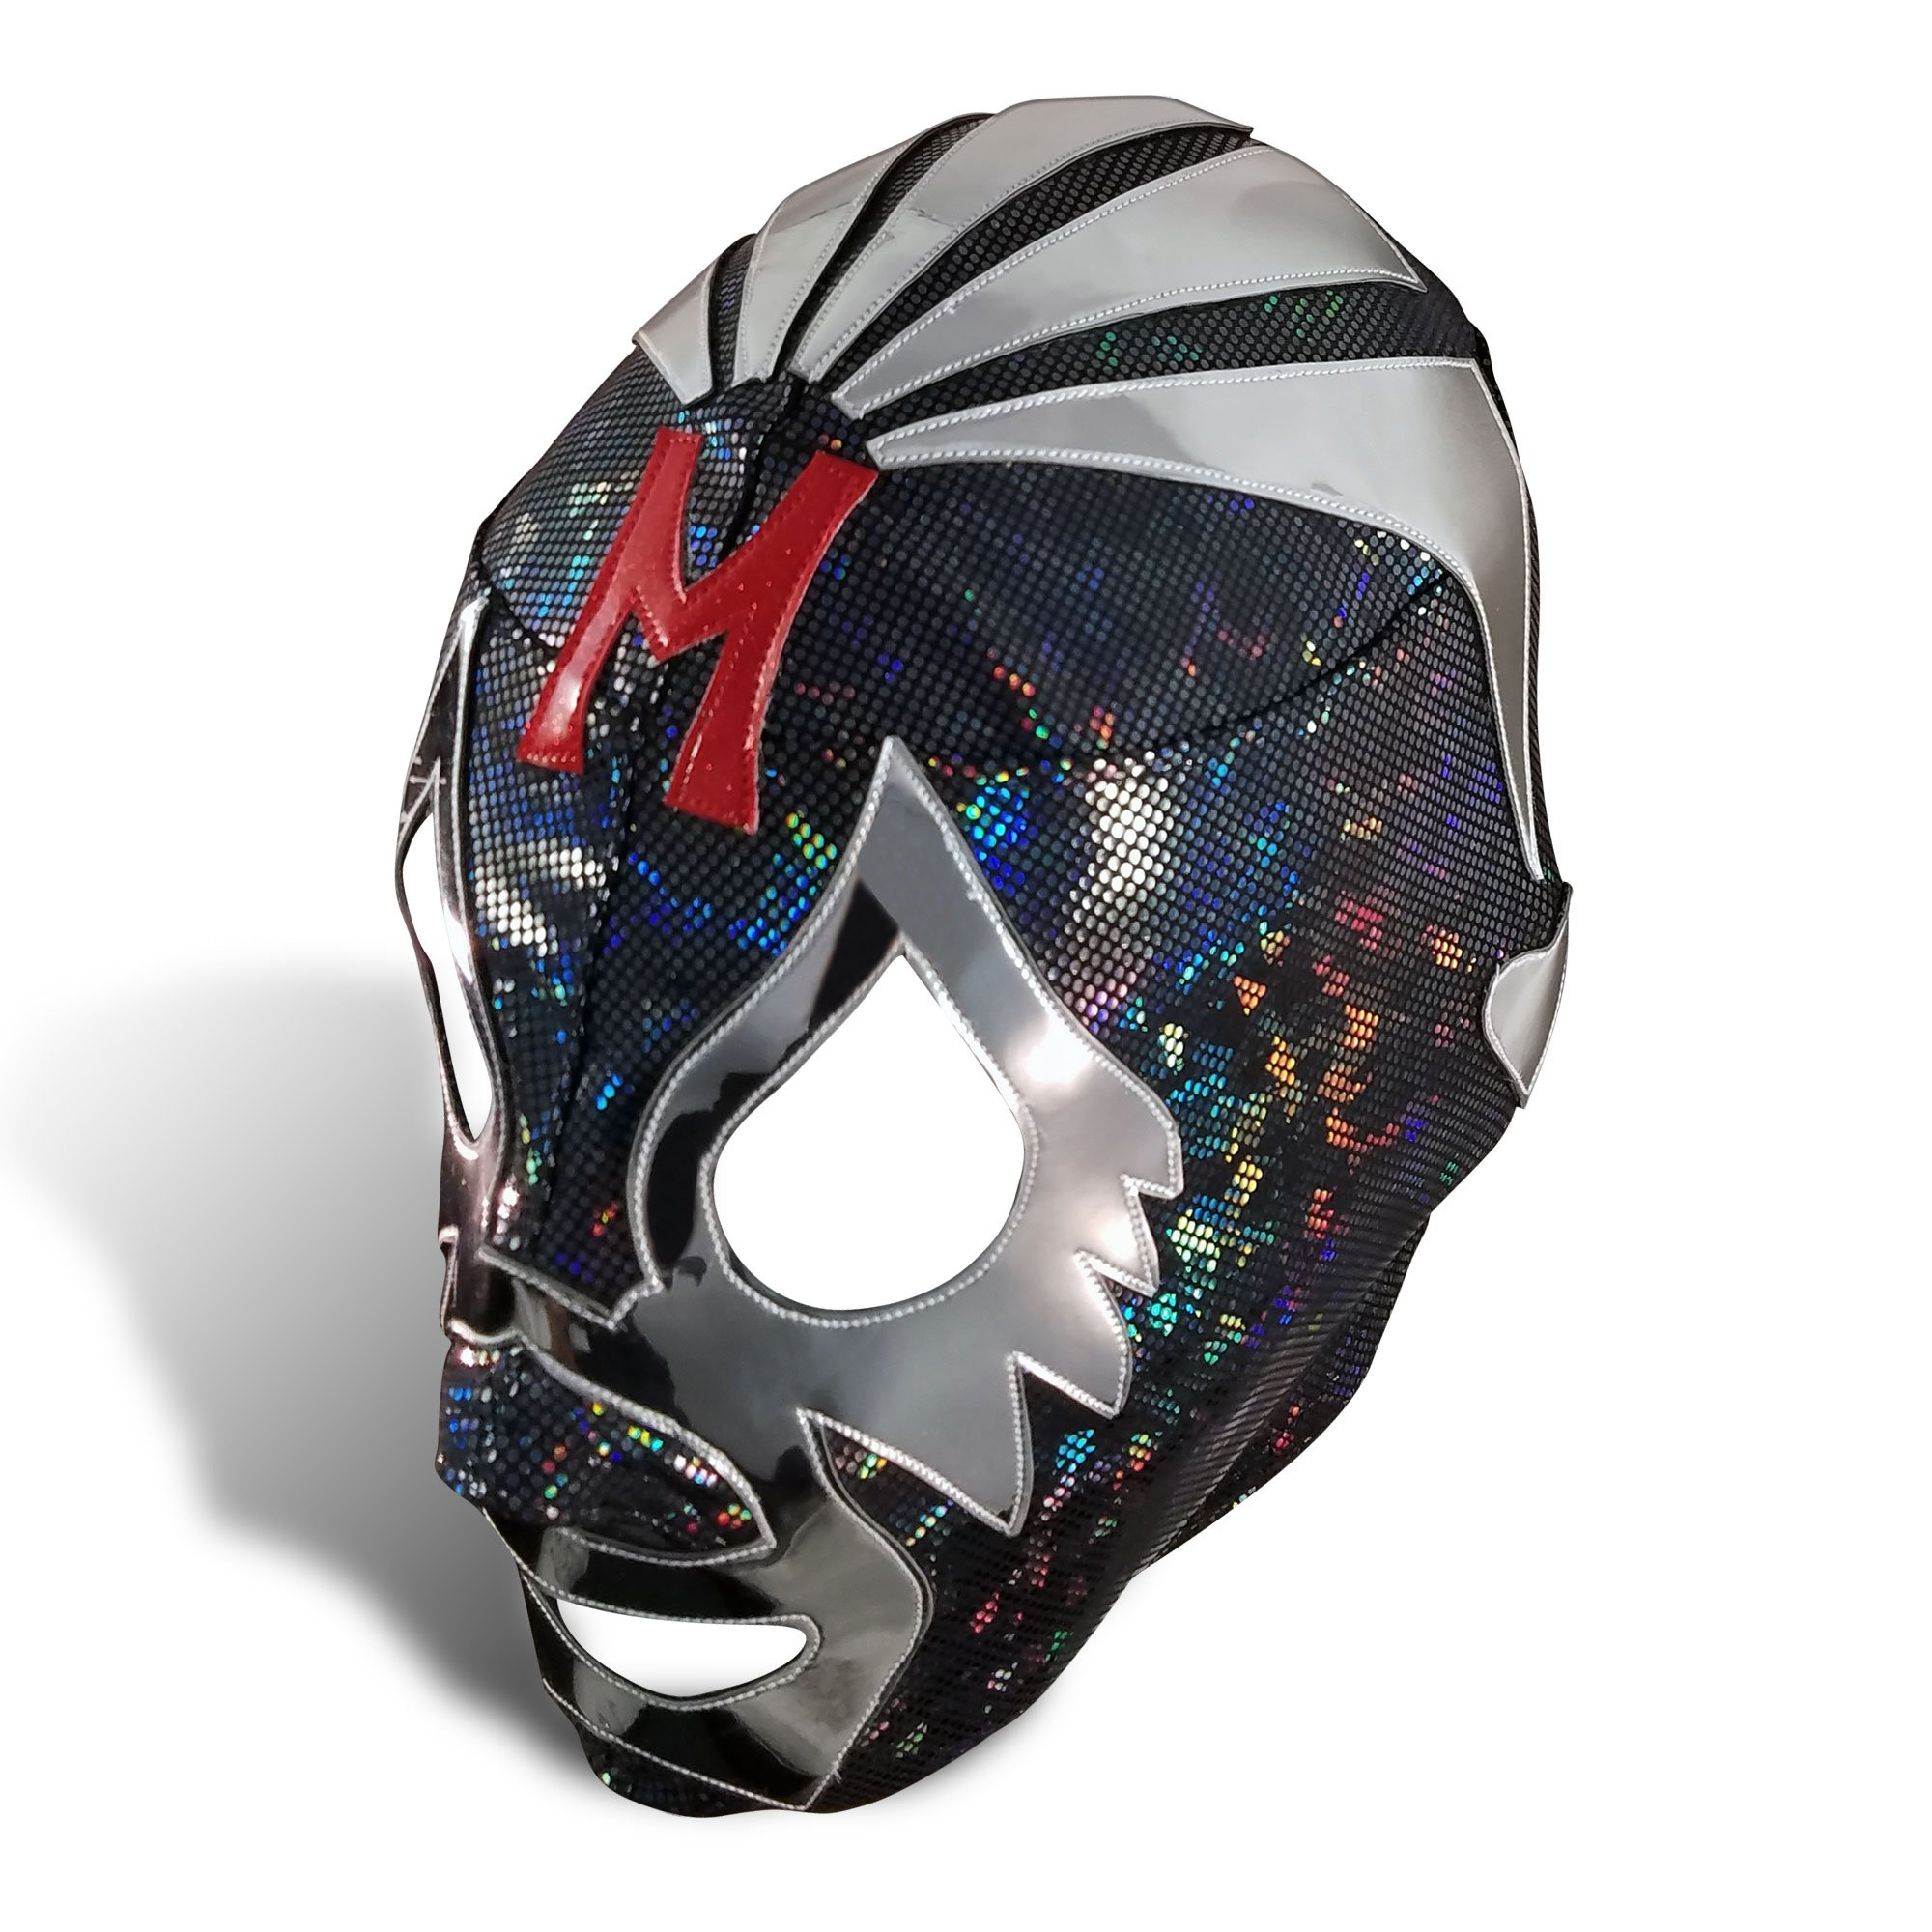 Mil Mascaras Mexican Wrestling Mask - Black Lycra- Adult Size by Airsoft-Max